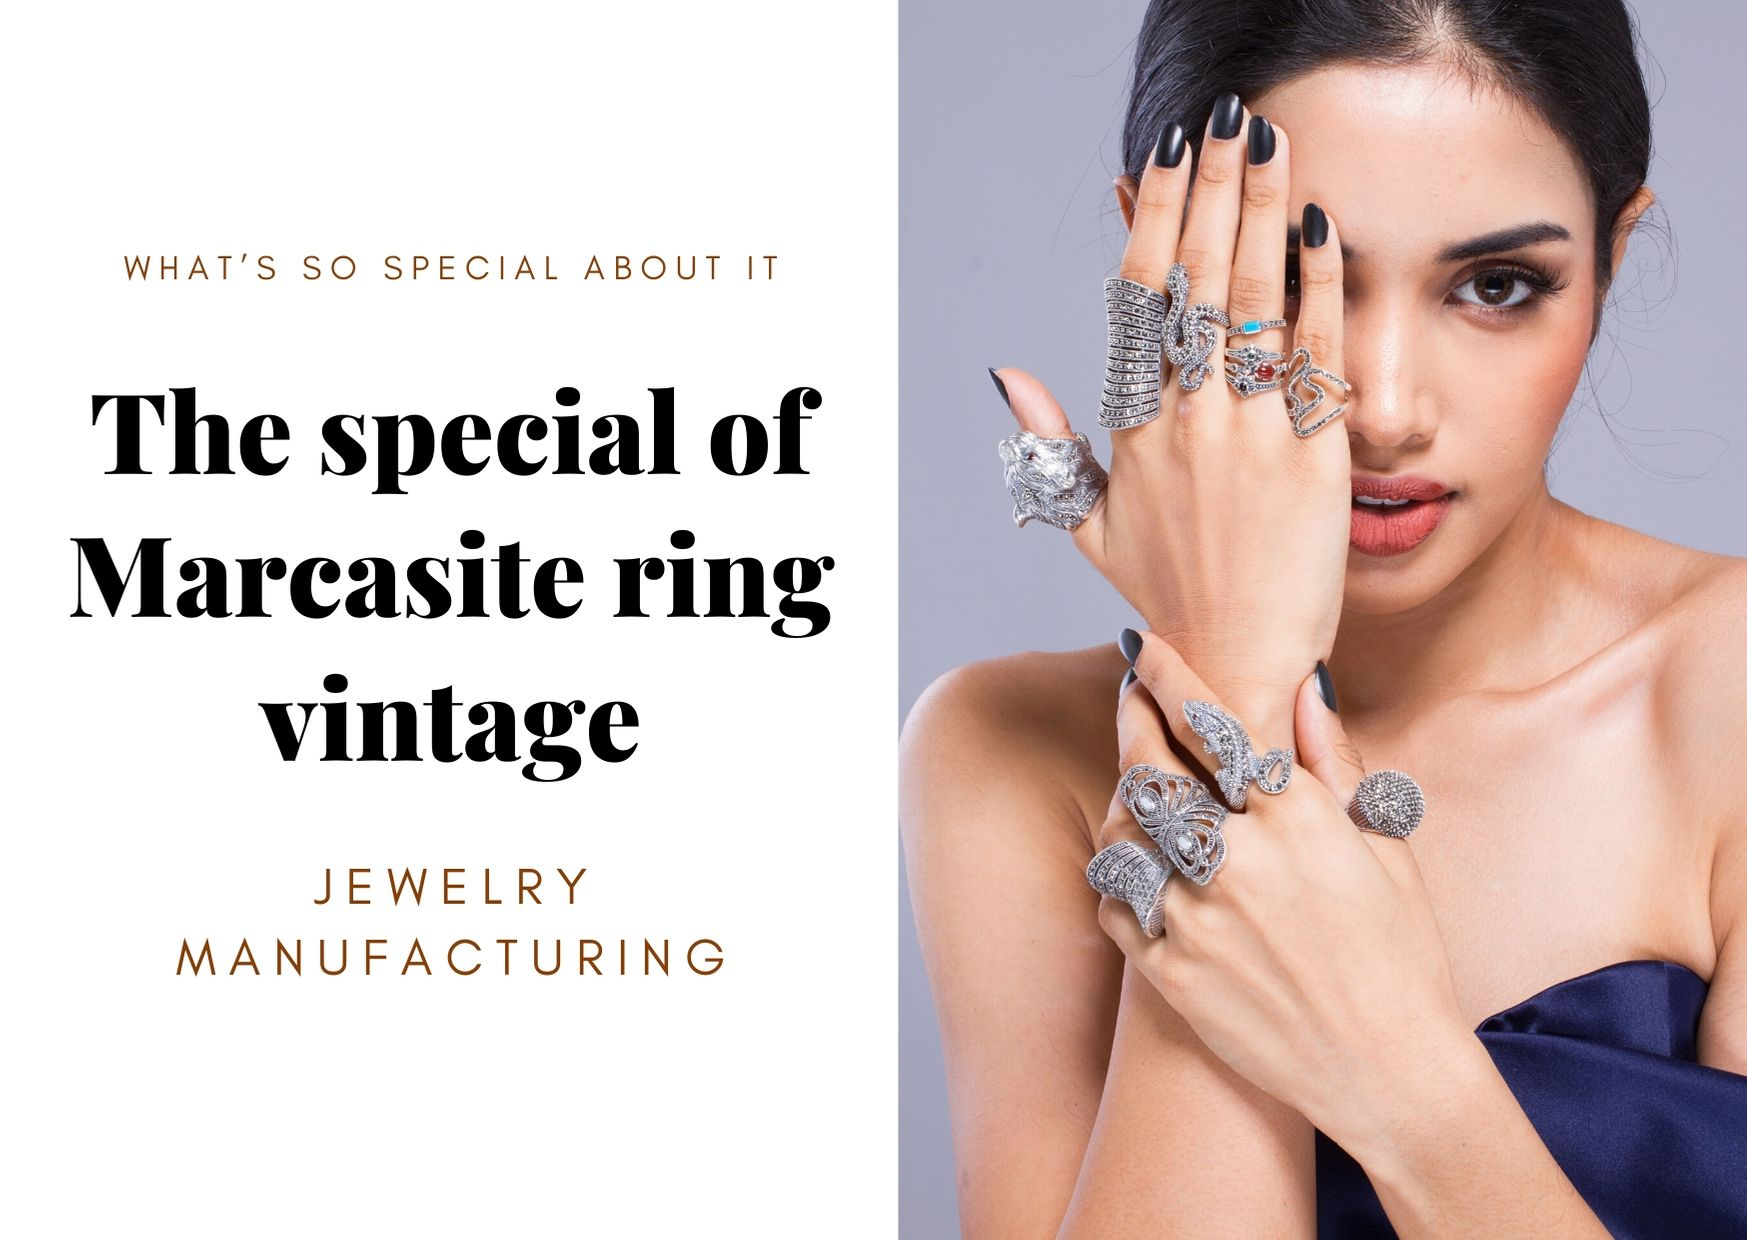 Vintage Marcasite Ring Jewelry What's So Special About it